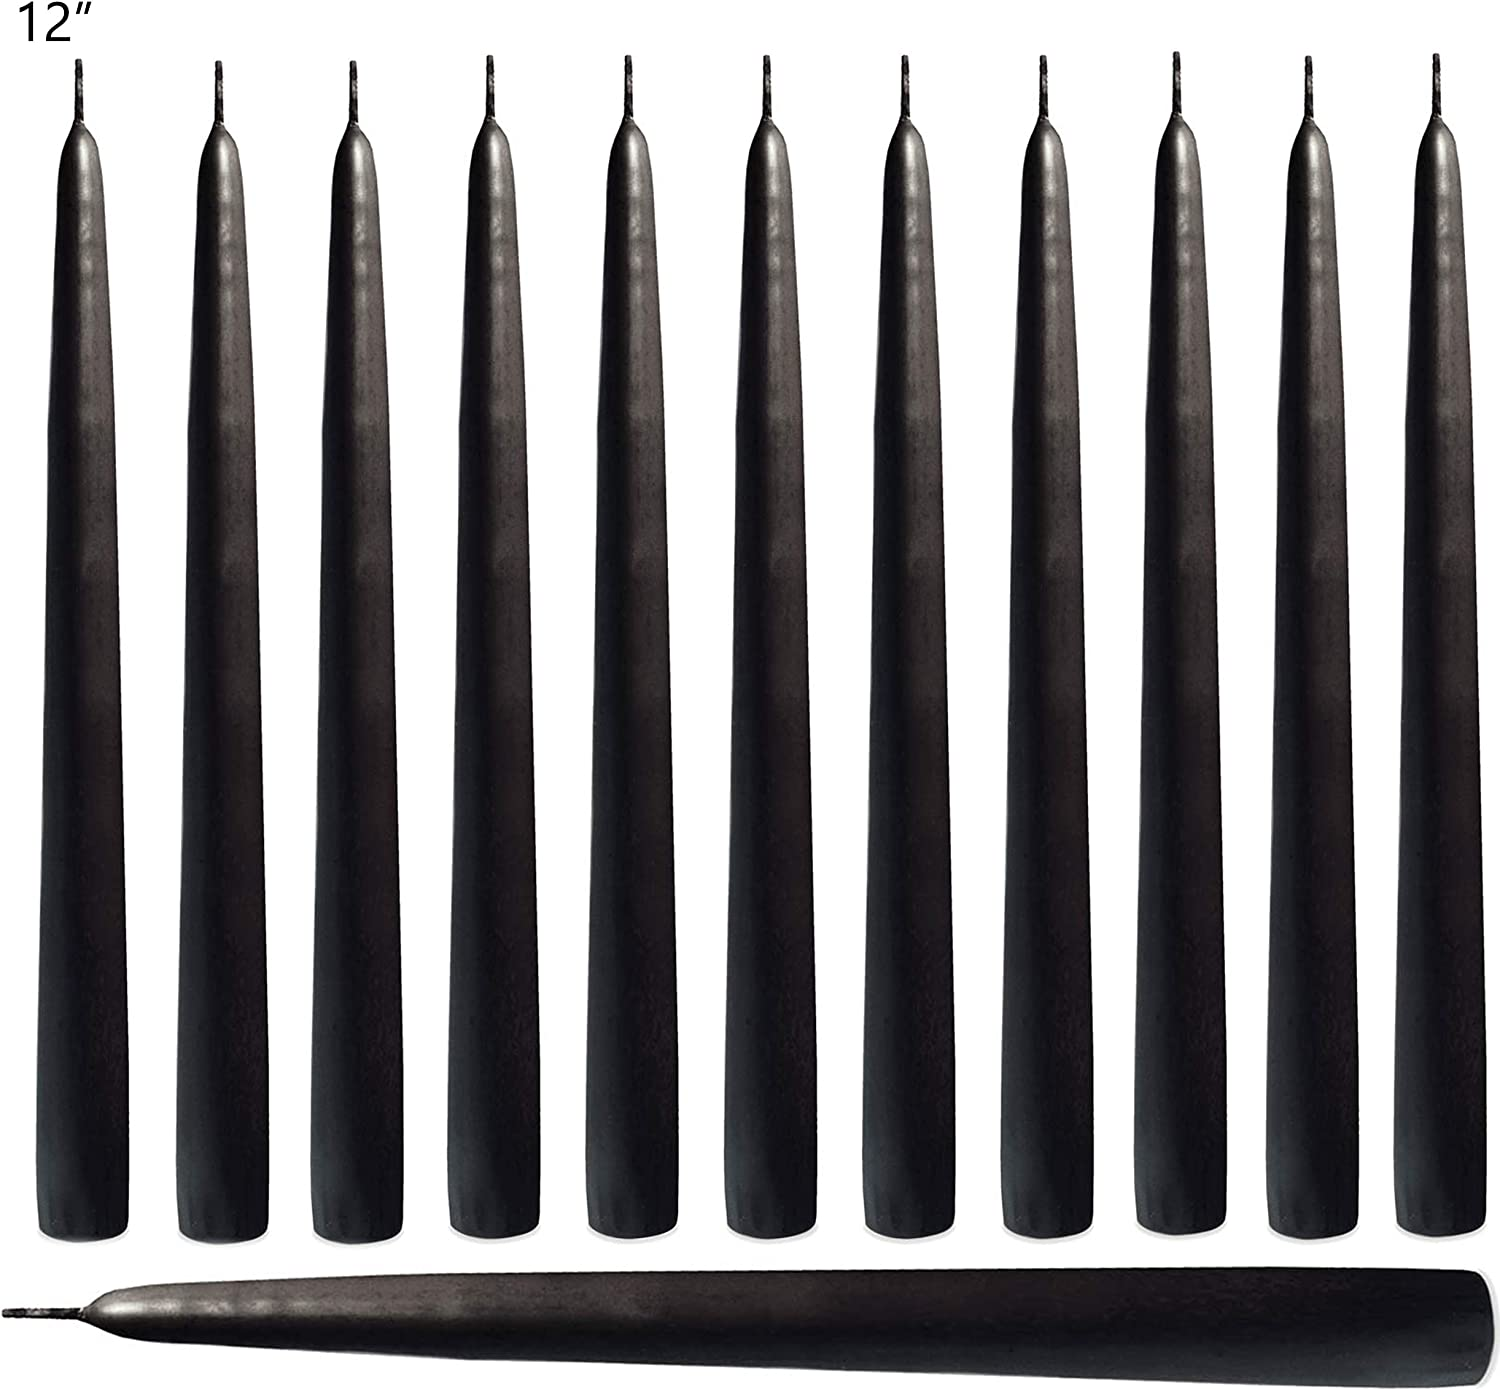 12-Inch Tall Root Unscented Hand Dipped Taper Candles White Box of 12